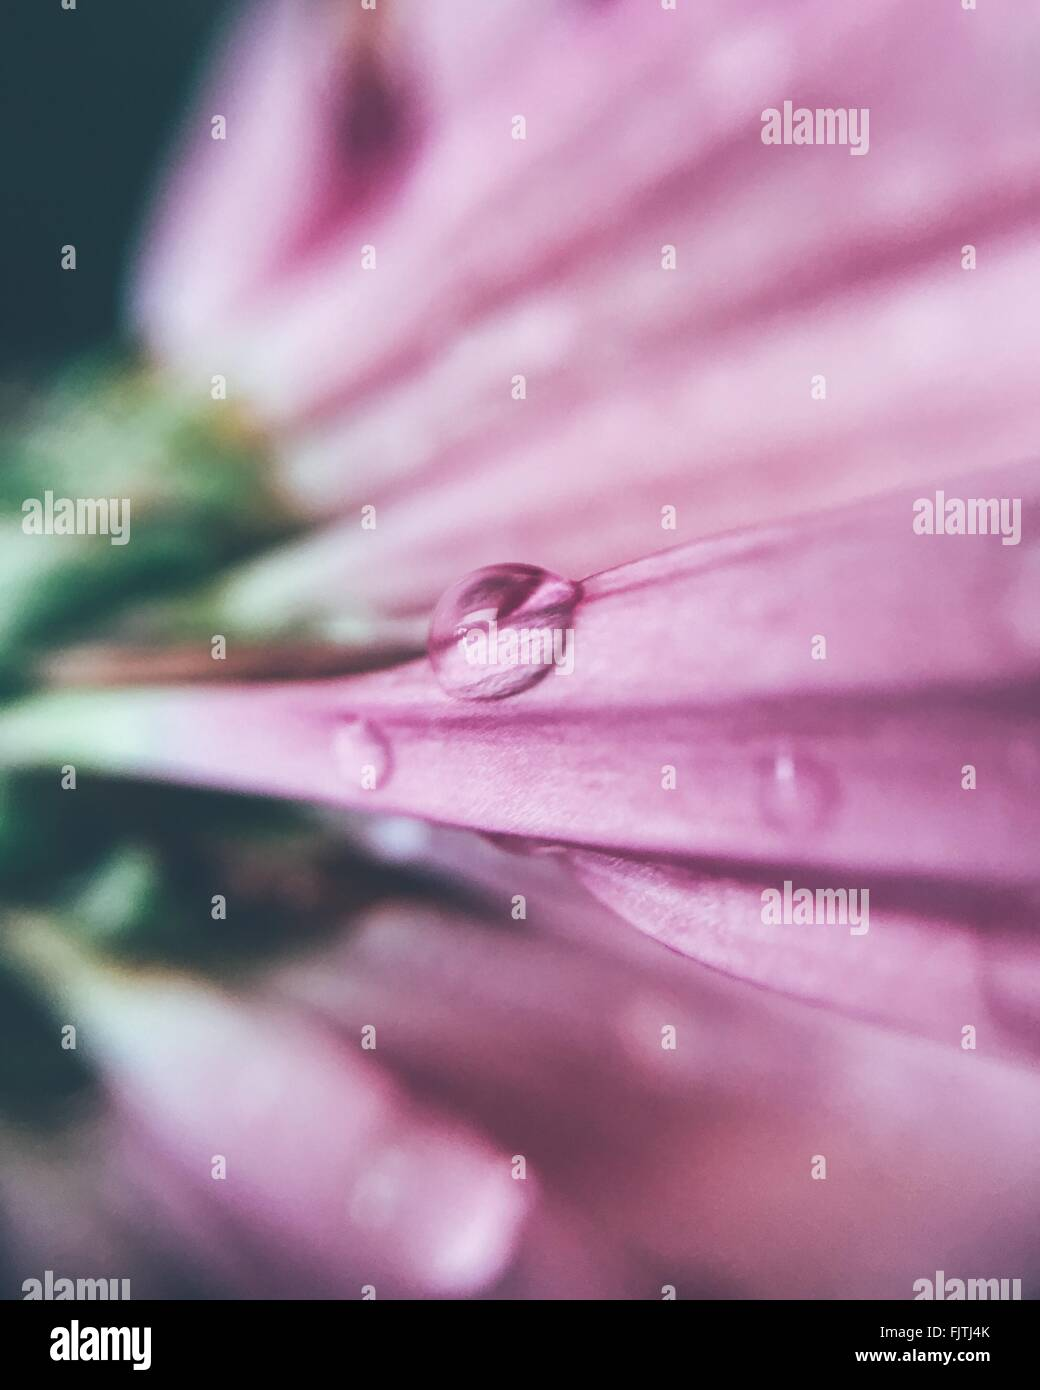 Detail Shot Of Drops On Flower - Stock Image